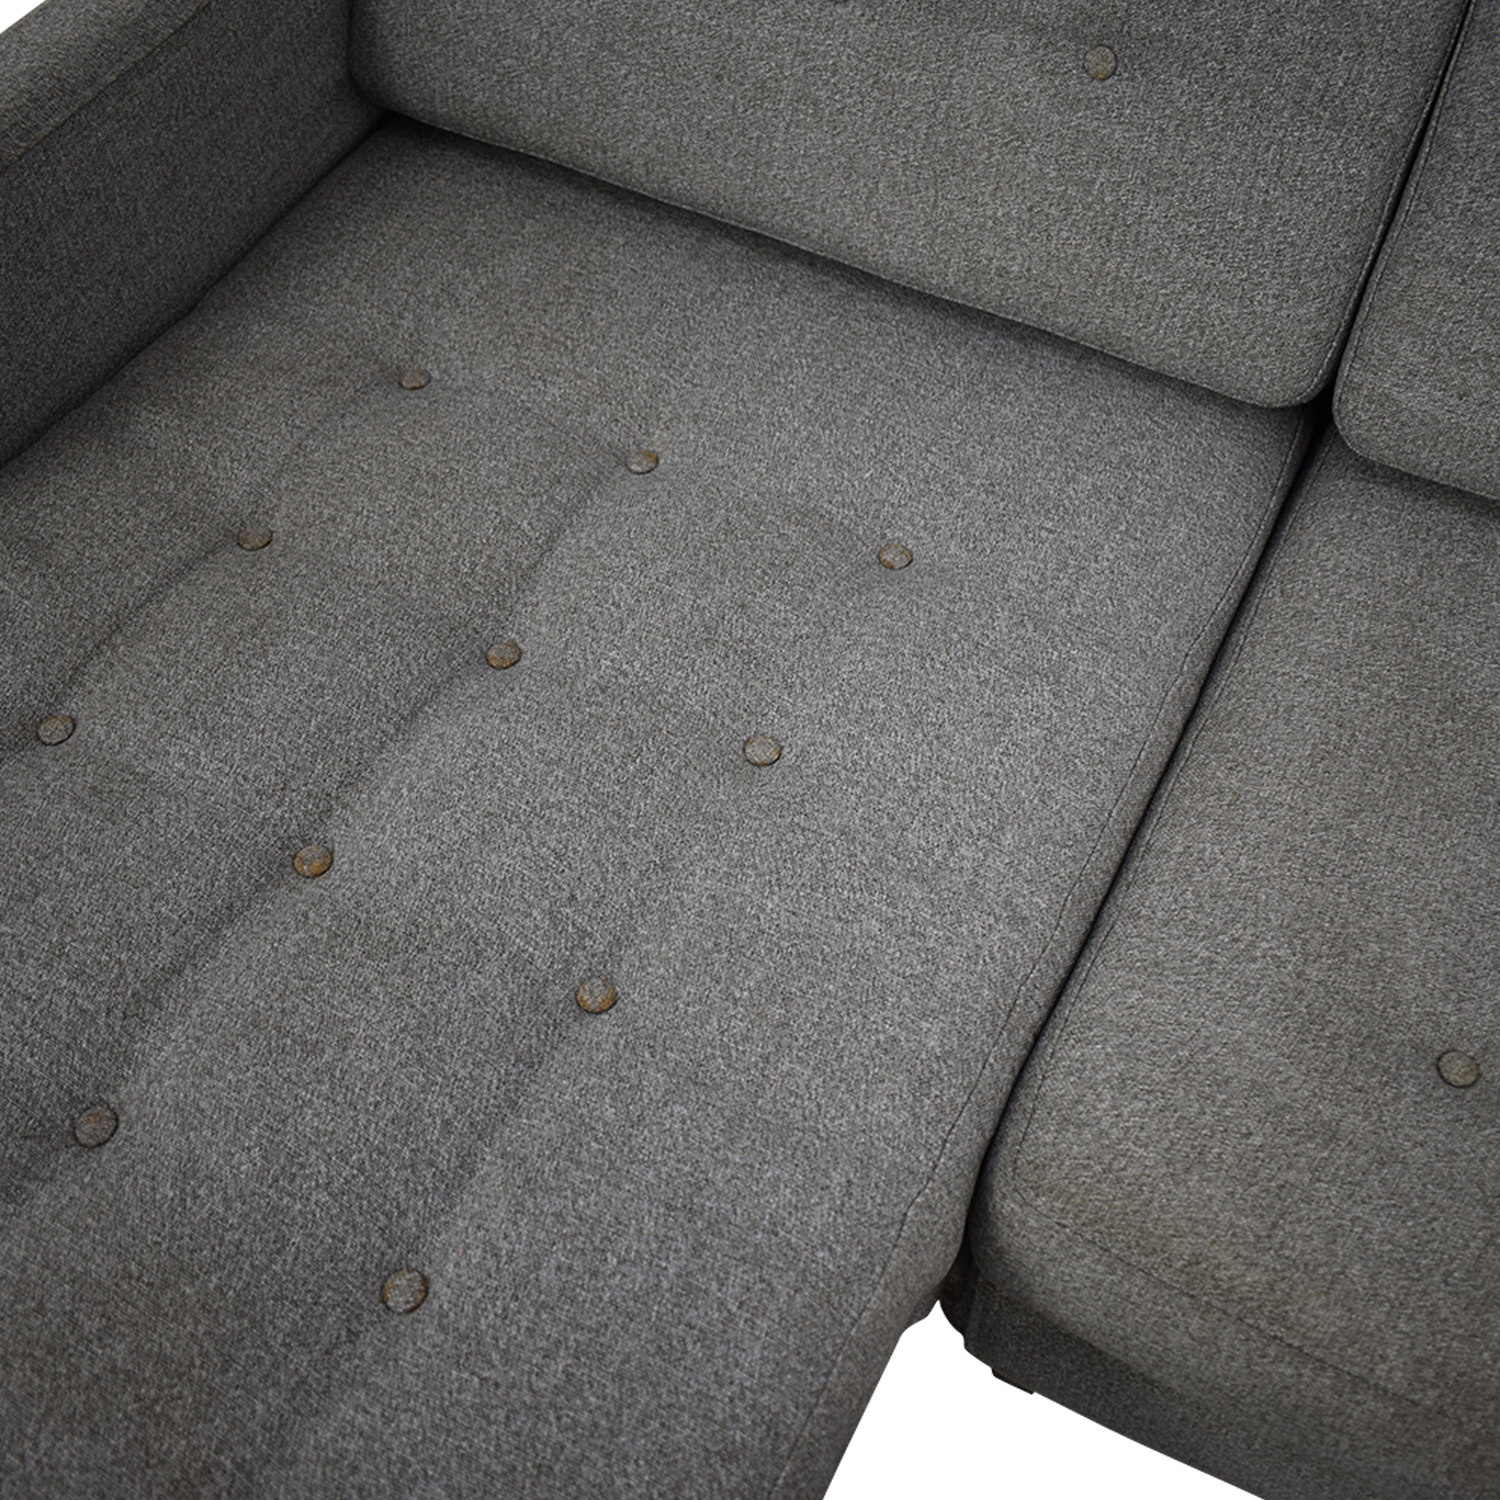 CB2 CB2 Ditto II Sectional Sofa for sale